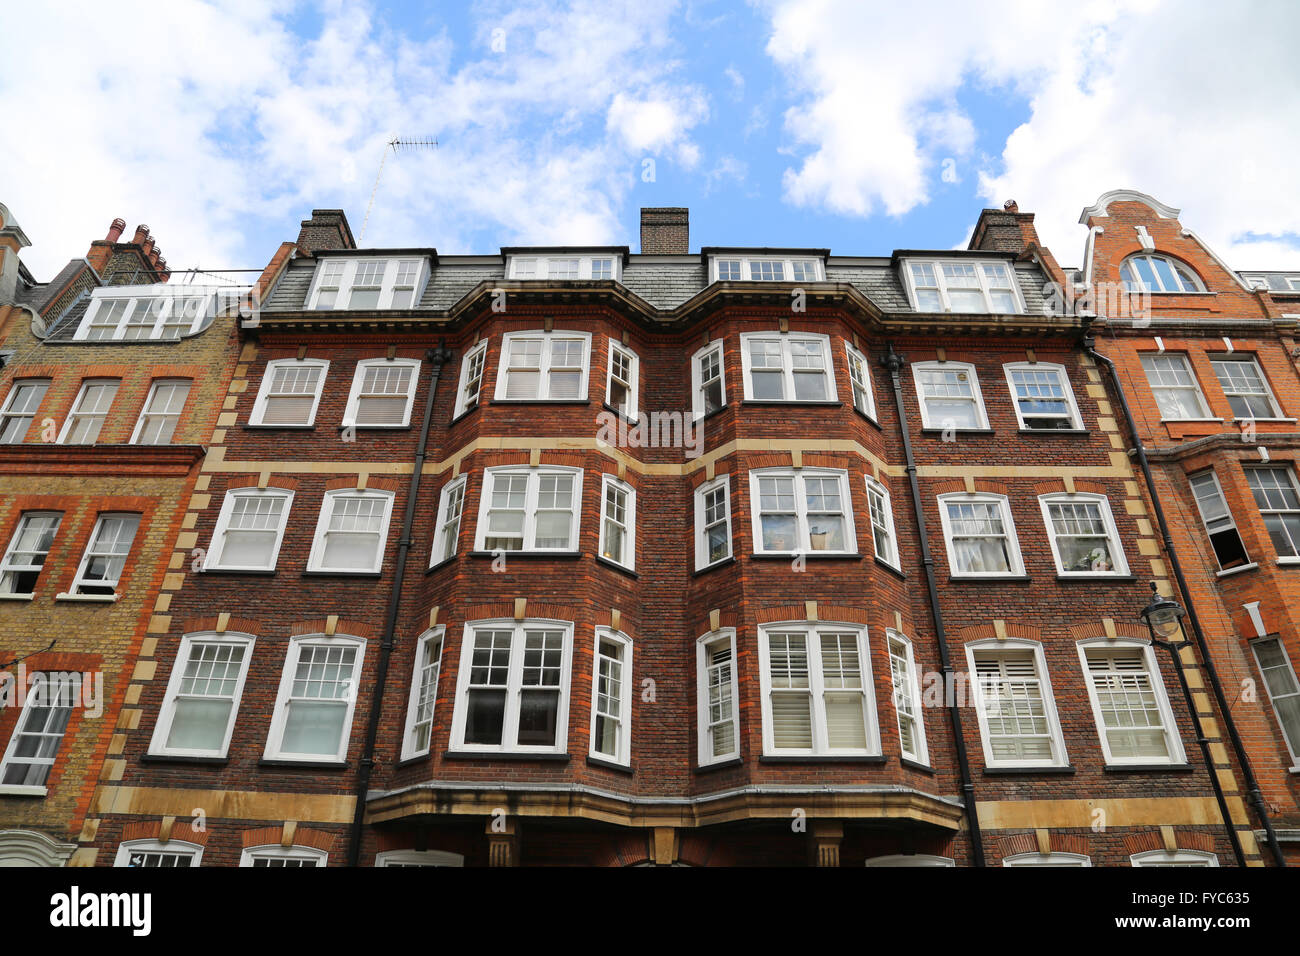 Traditional brick buildings in the Fitzrovia neighborhood in London. - Stock Image